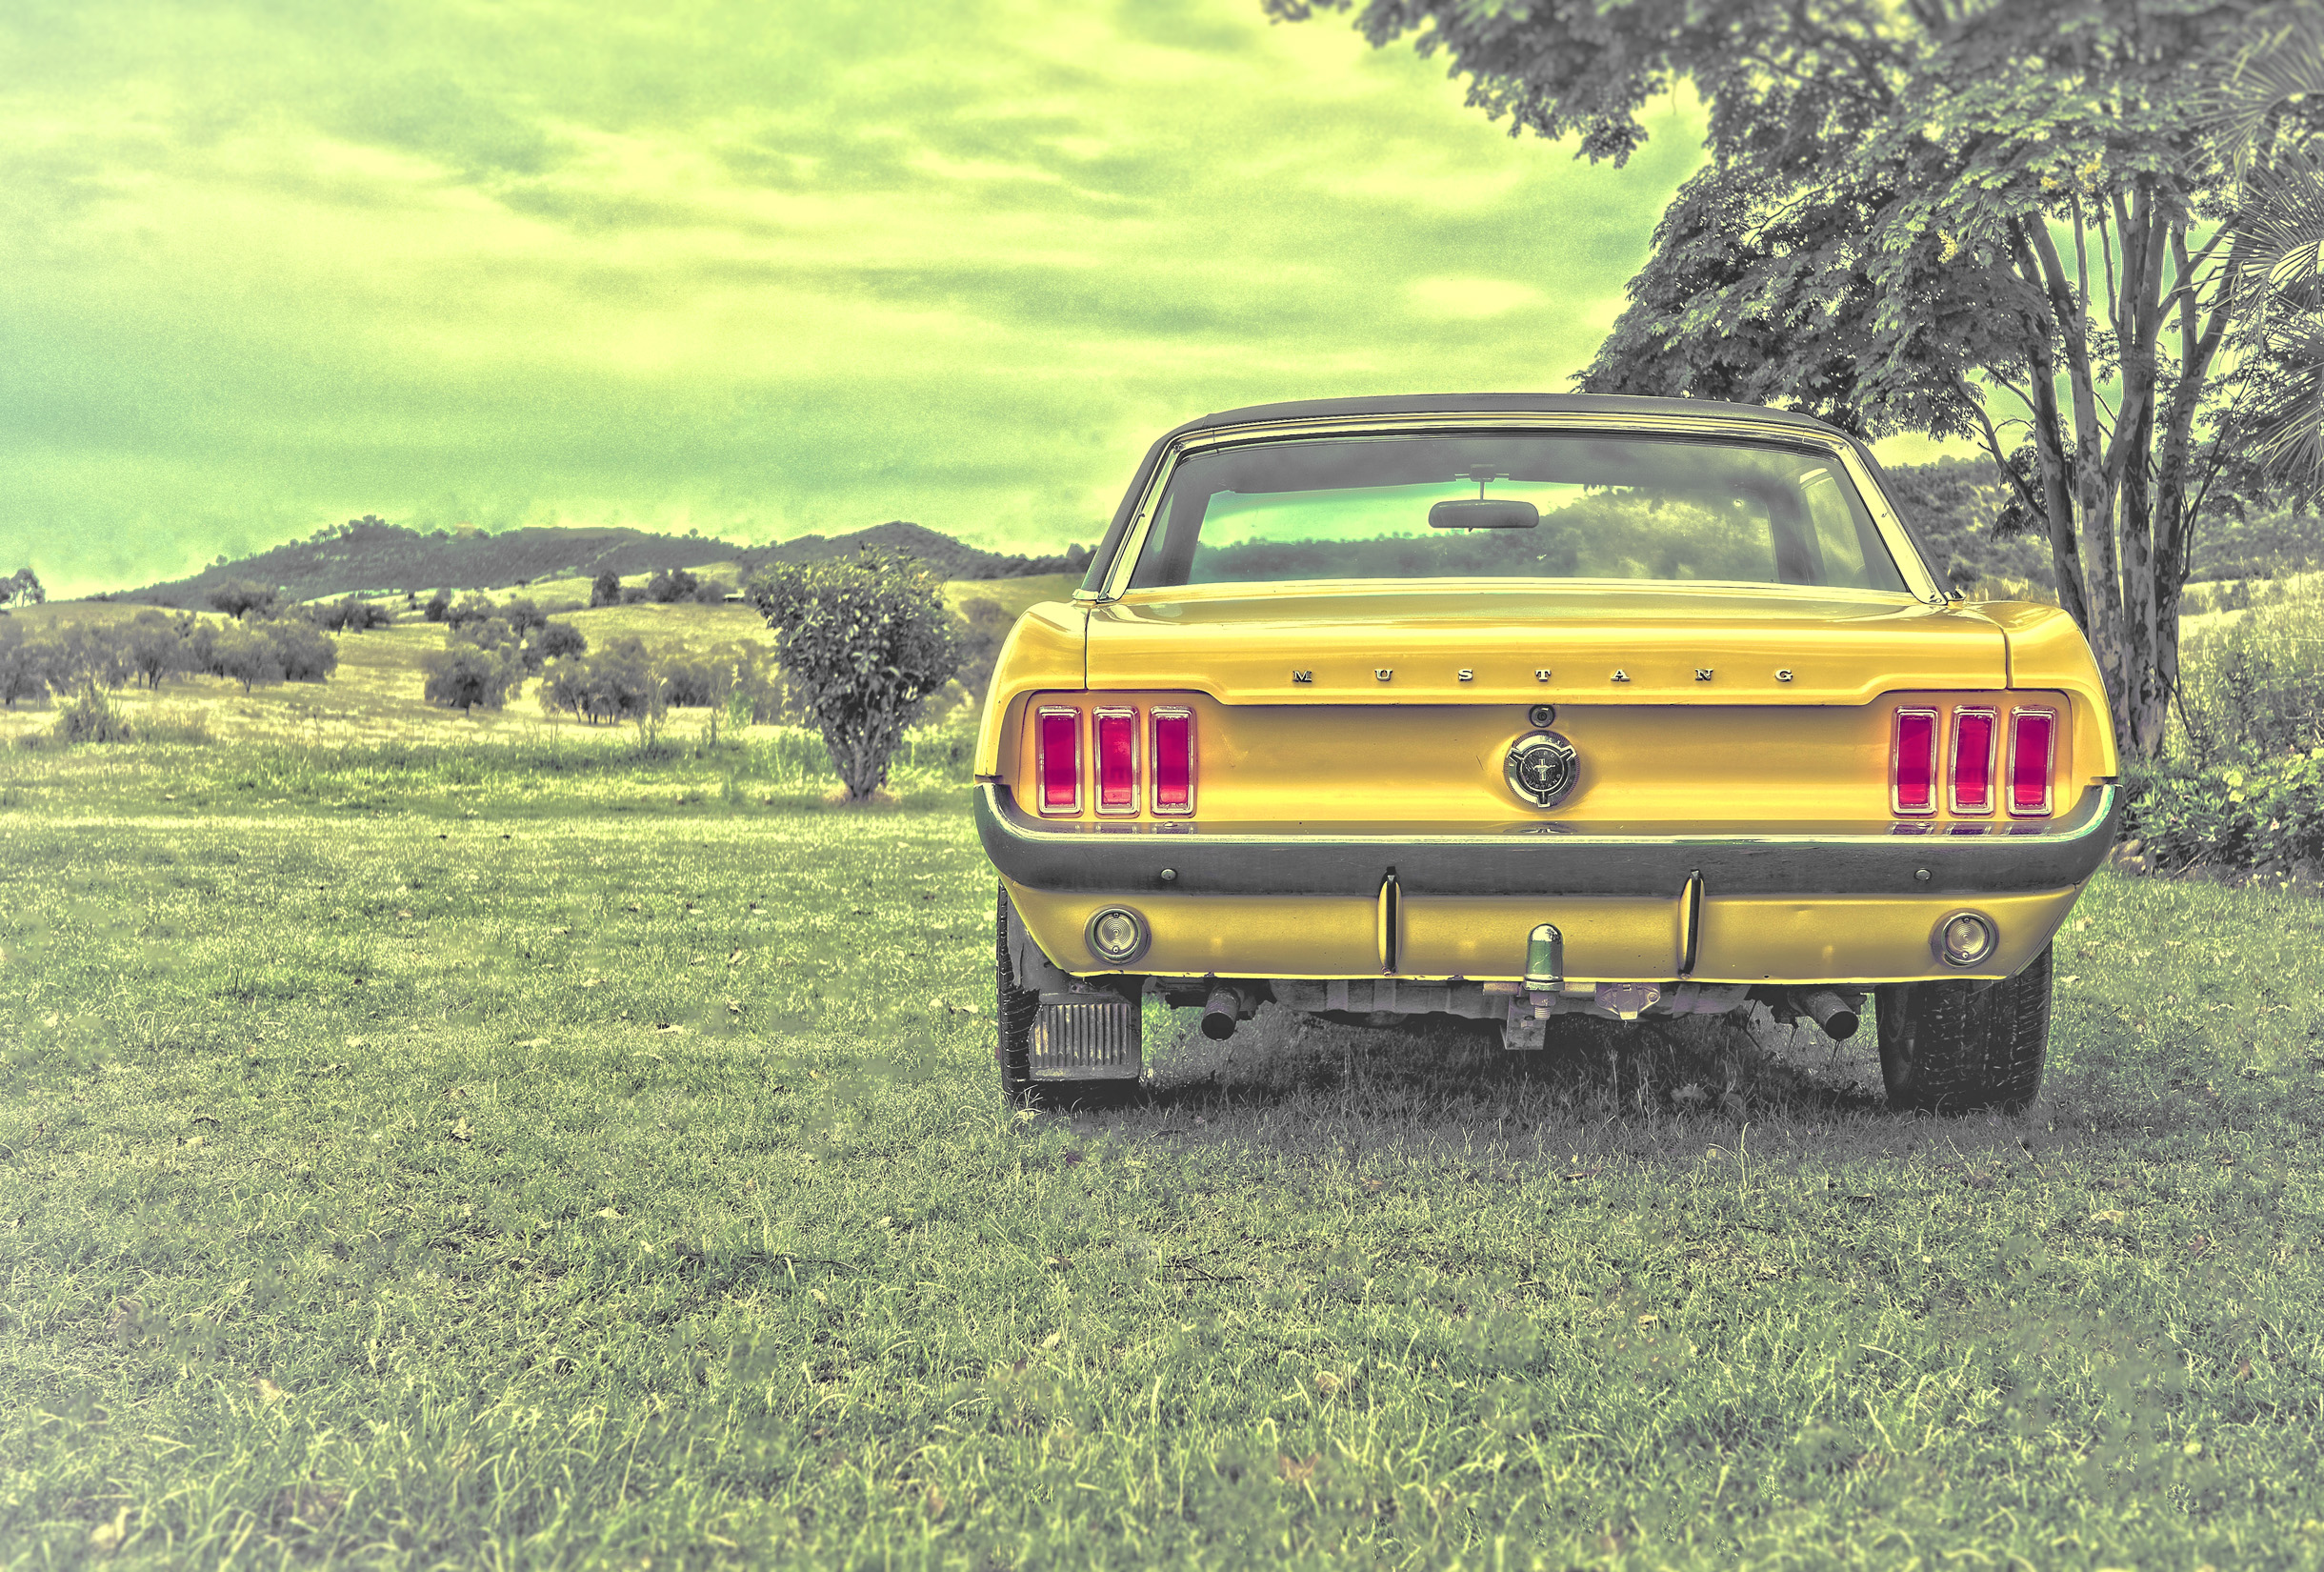 Yellow ford mustang - vintage car photo